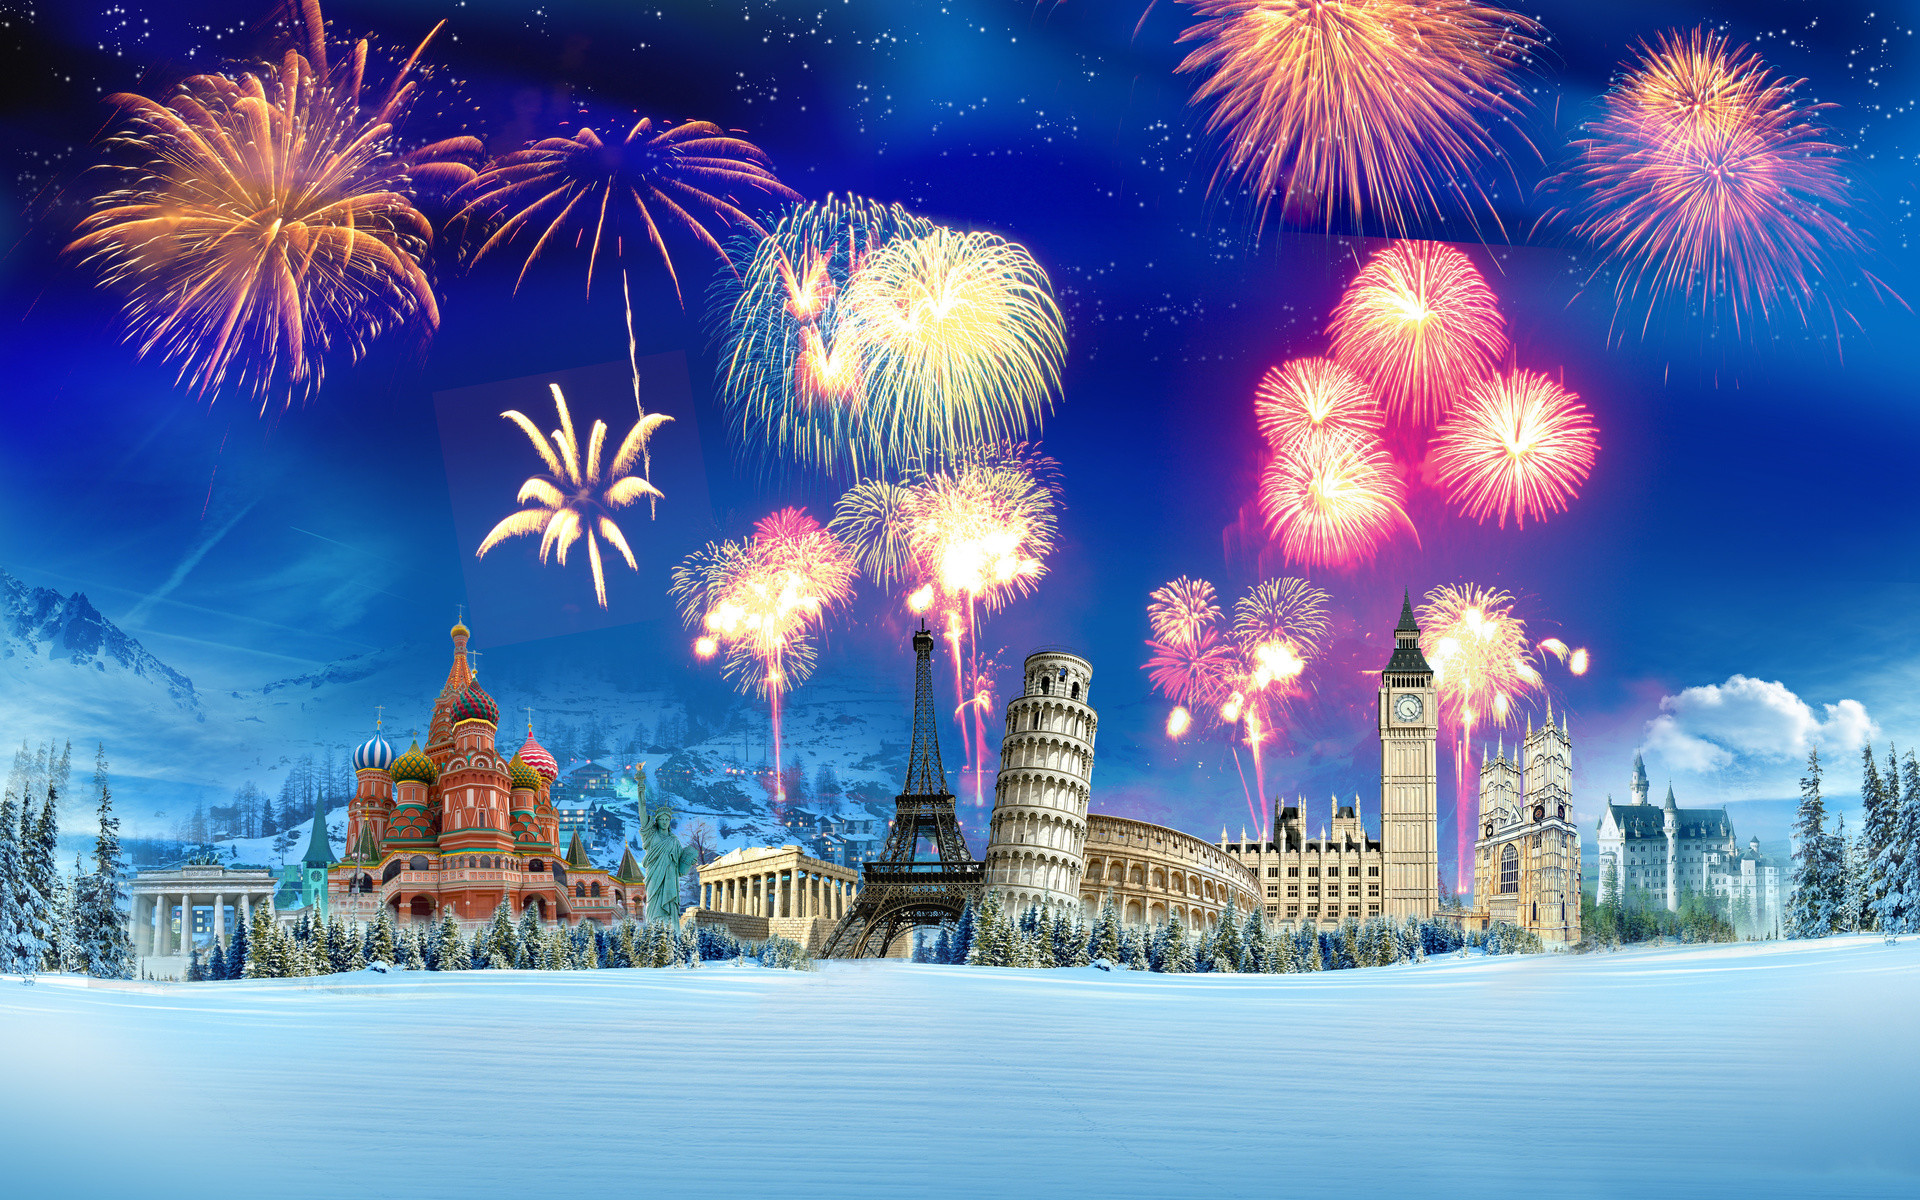 New Years Eve Free Wallpaper – Wallpaper, High Definition, High .